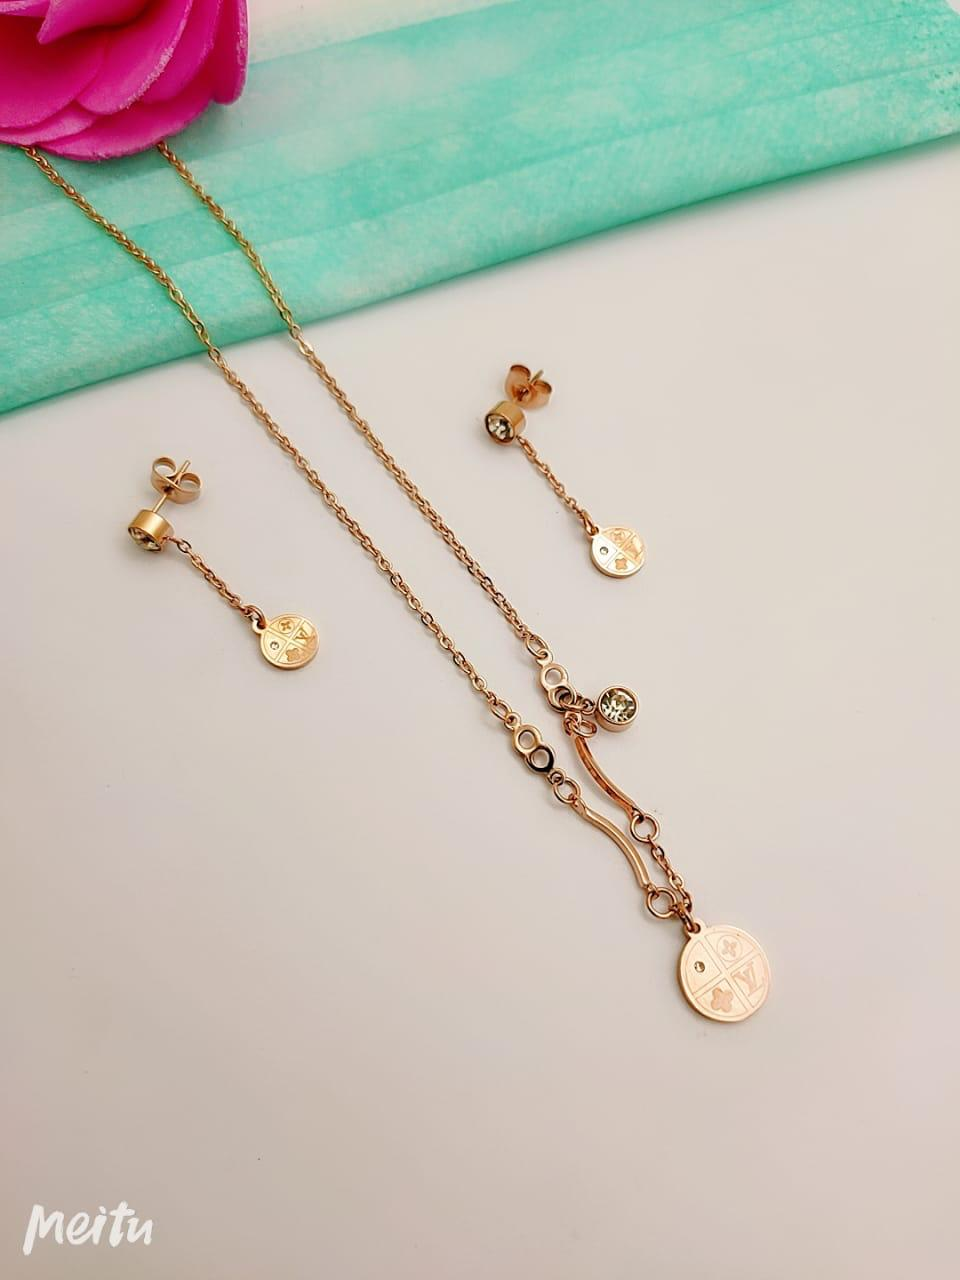 Lisa Golden Coin Pendant Necklace with Earrings - Liquidation Cart